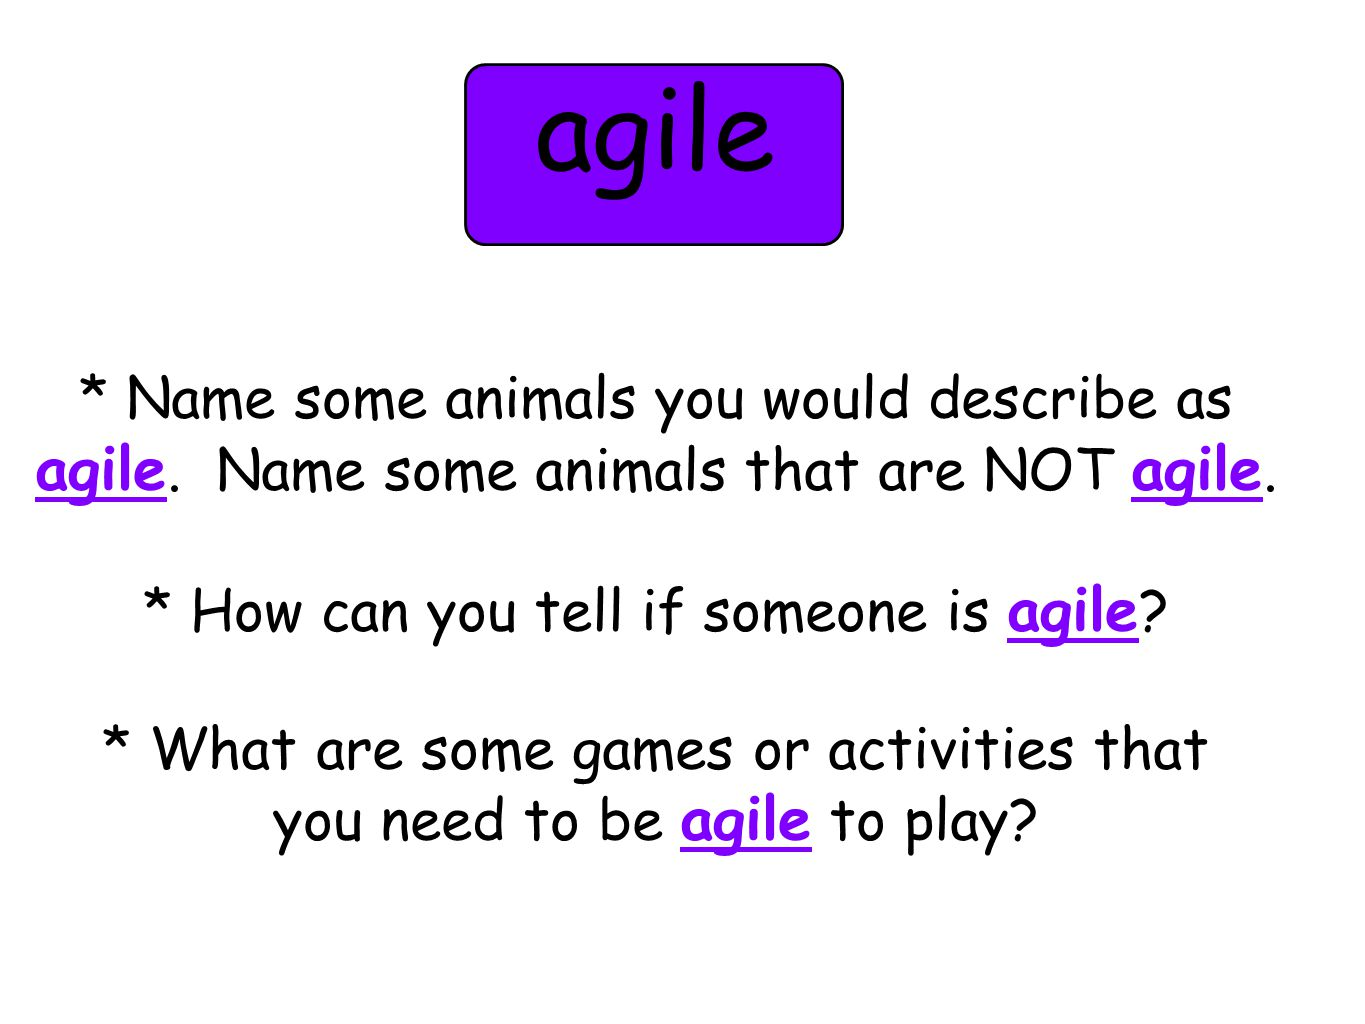 * Name some animals you would describe as agile. Name some animals that are NOT agile.